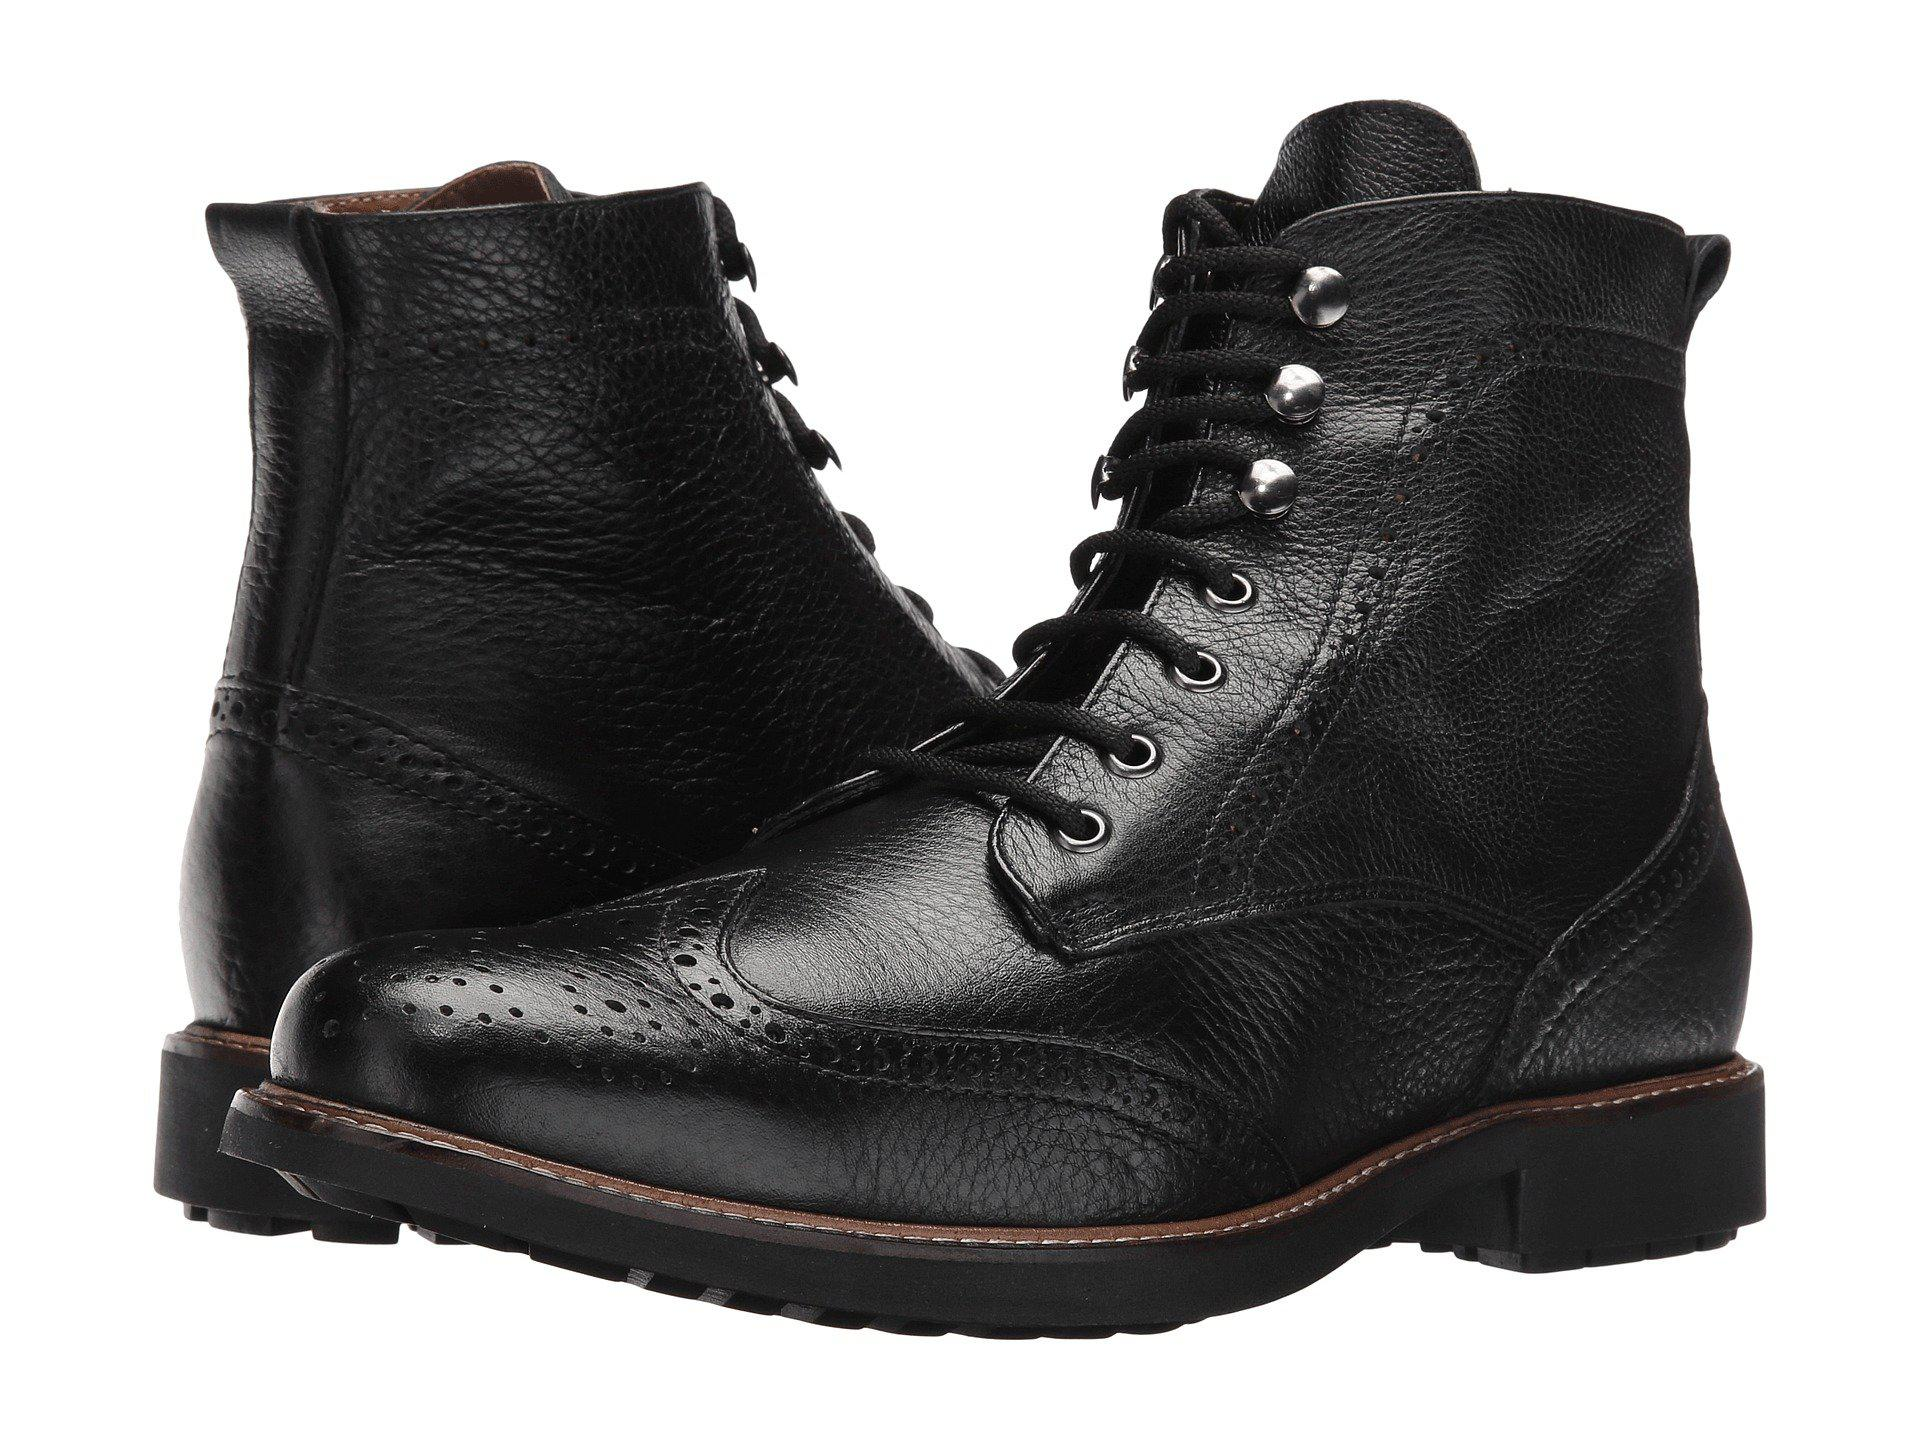 5c745f7c198f7 Lyst - Massimo Matteo Perf Wing Boot (cafe) Men s Lace-up Boots in ...